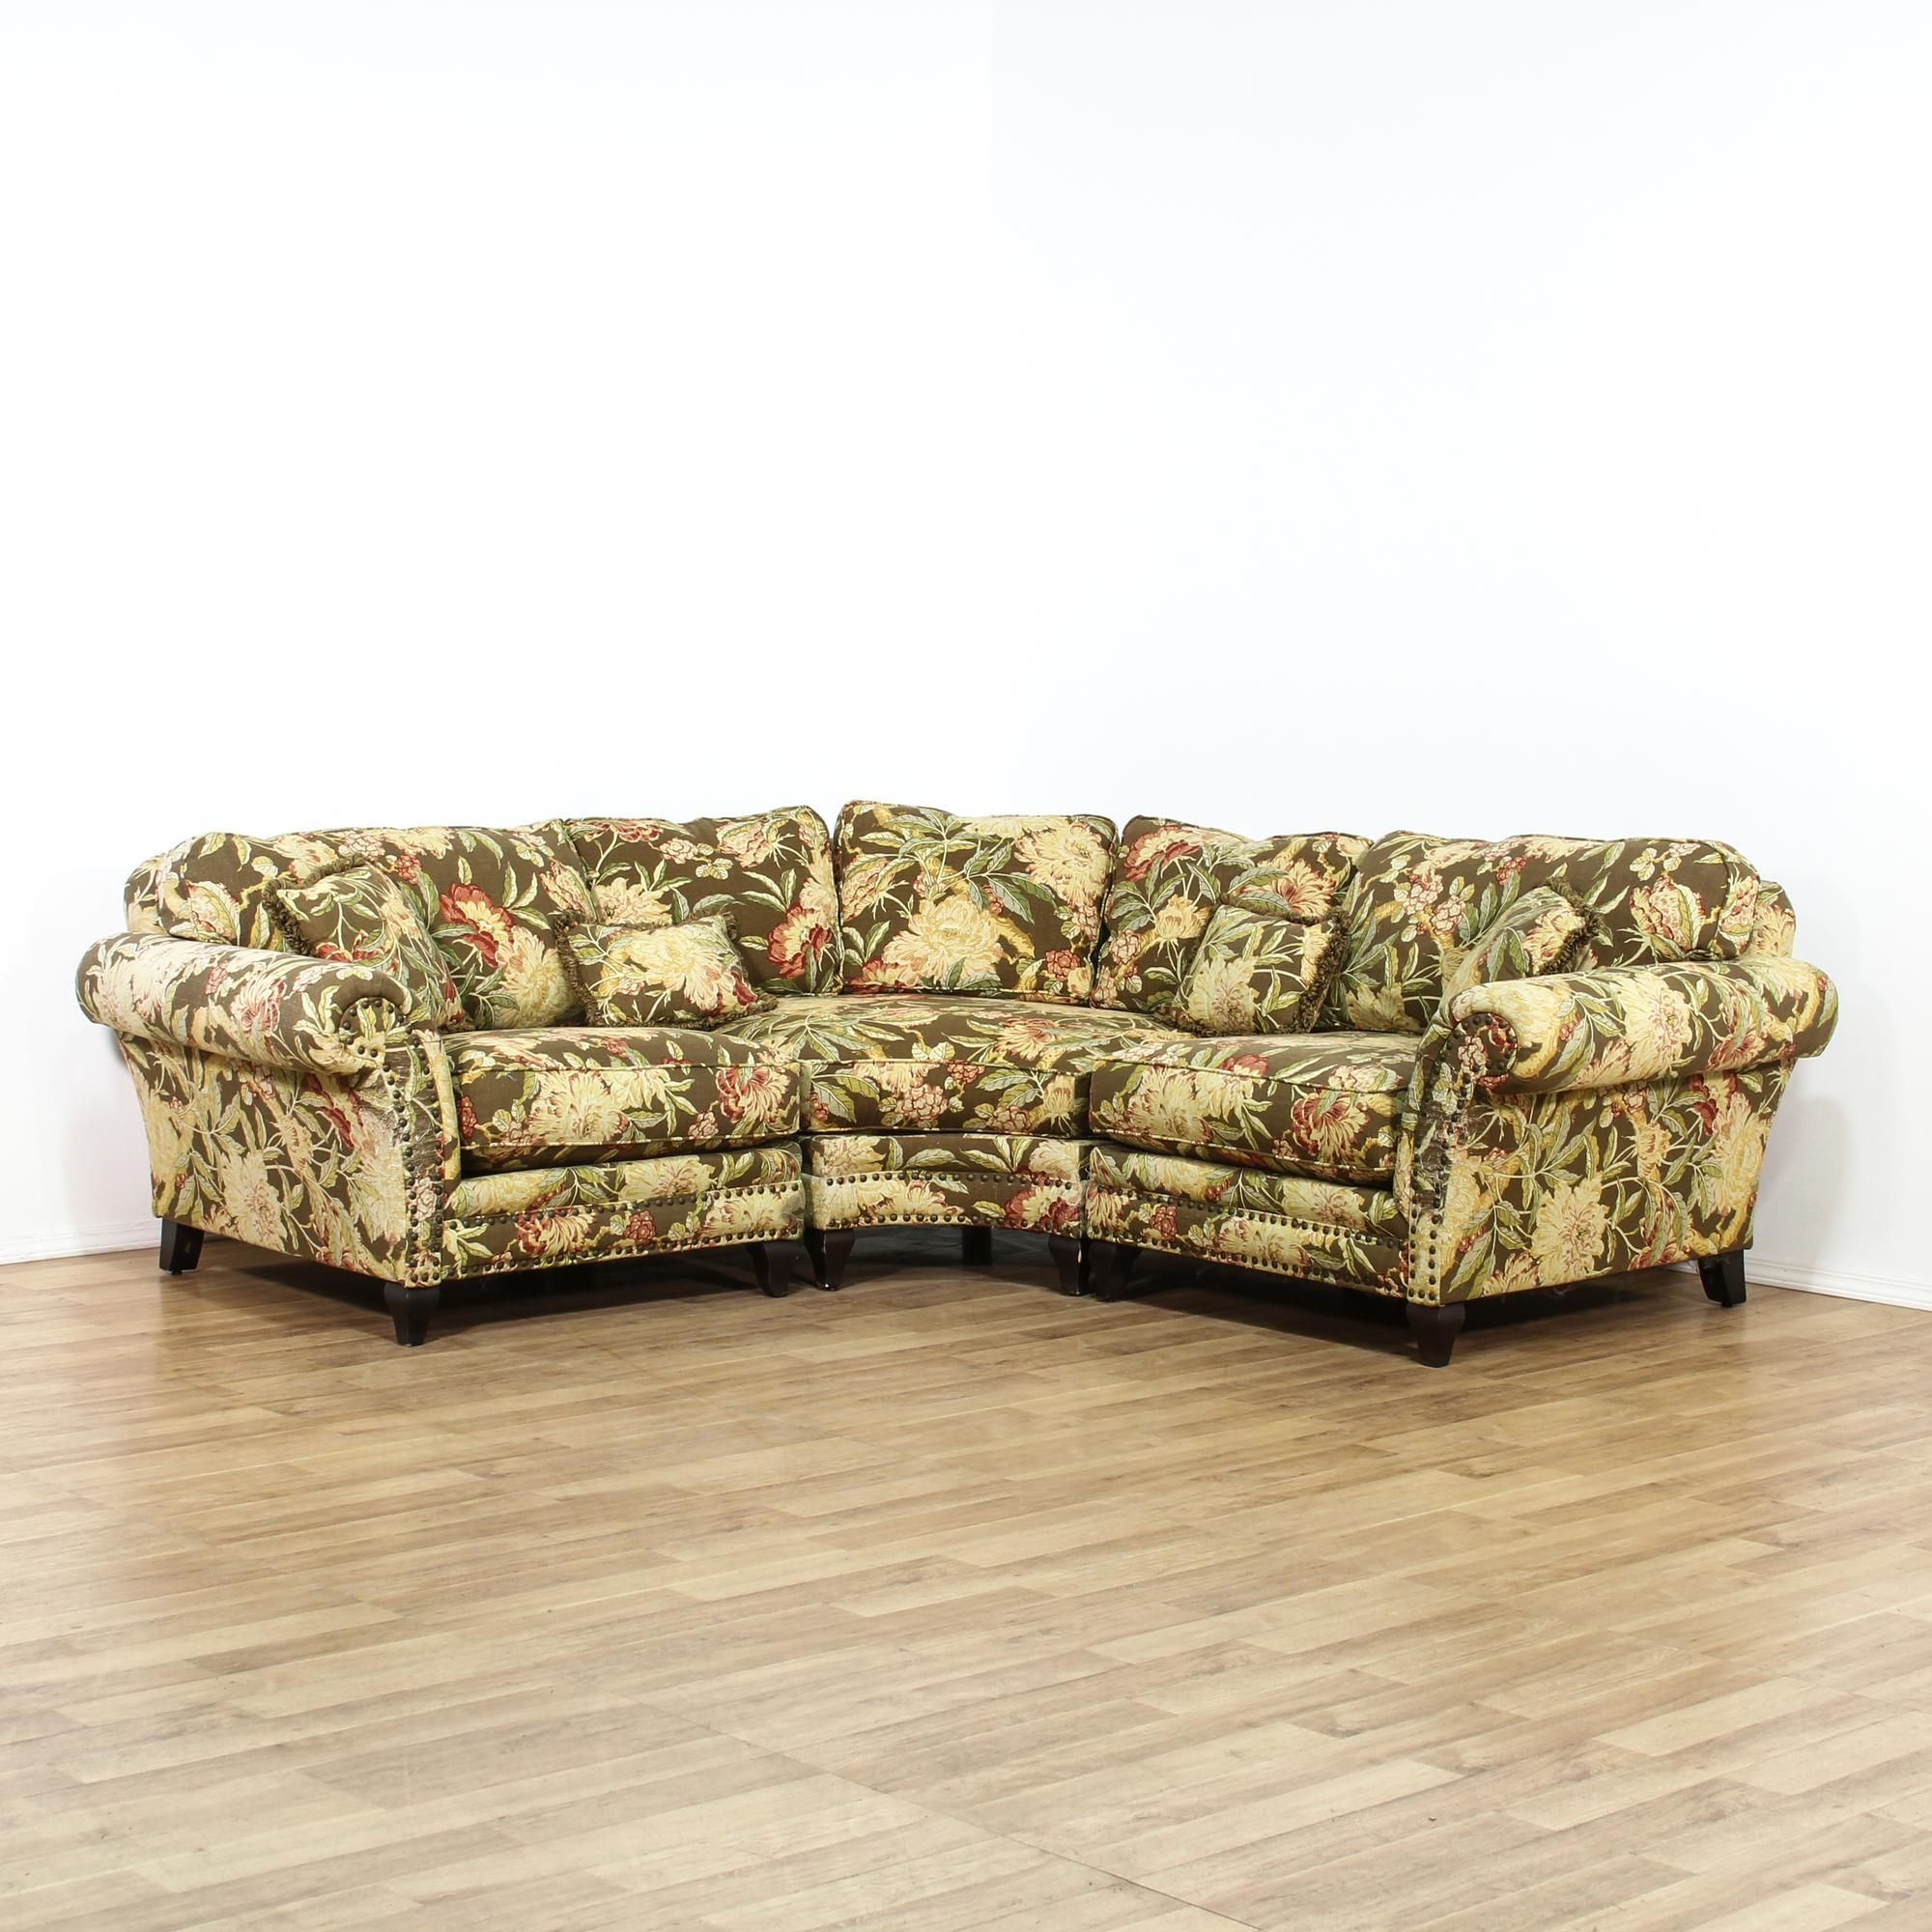 This sectional sofa is upholstered in a tropical pattern This